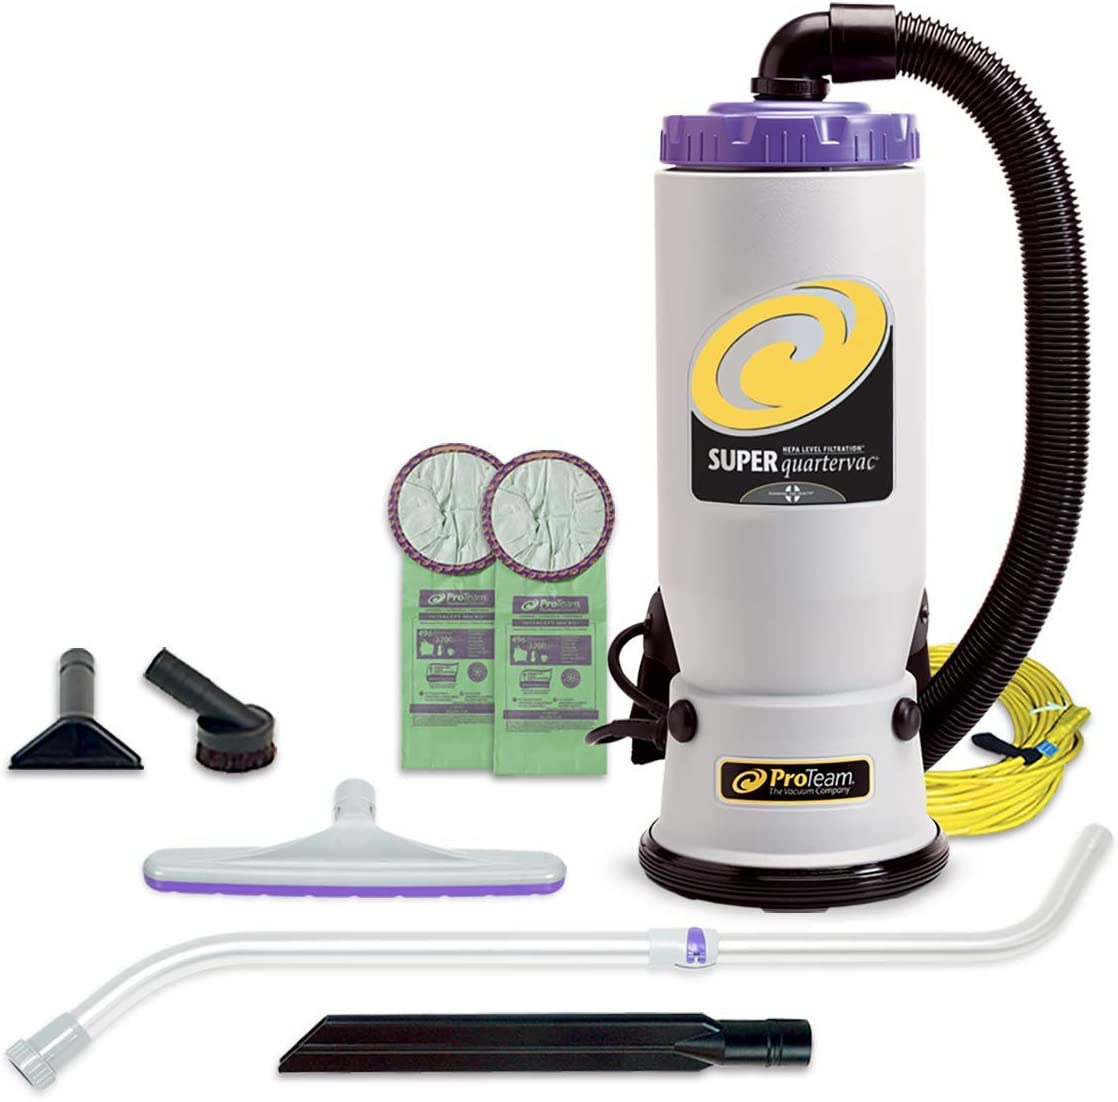 ProTeam Backpack Vacuums, Super QuarterVac Commercial Backpack Vacuum Cleaner with HEPA Media Filtration and Telescoping Wand Tool Kit, 6 Quart, Corded (Renewed)